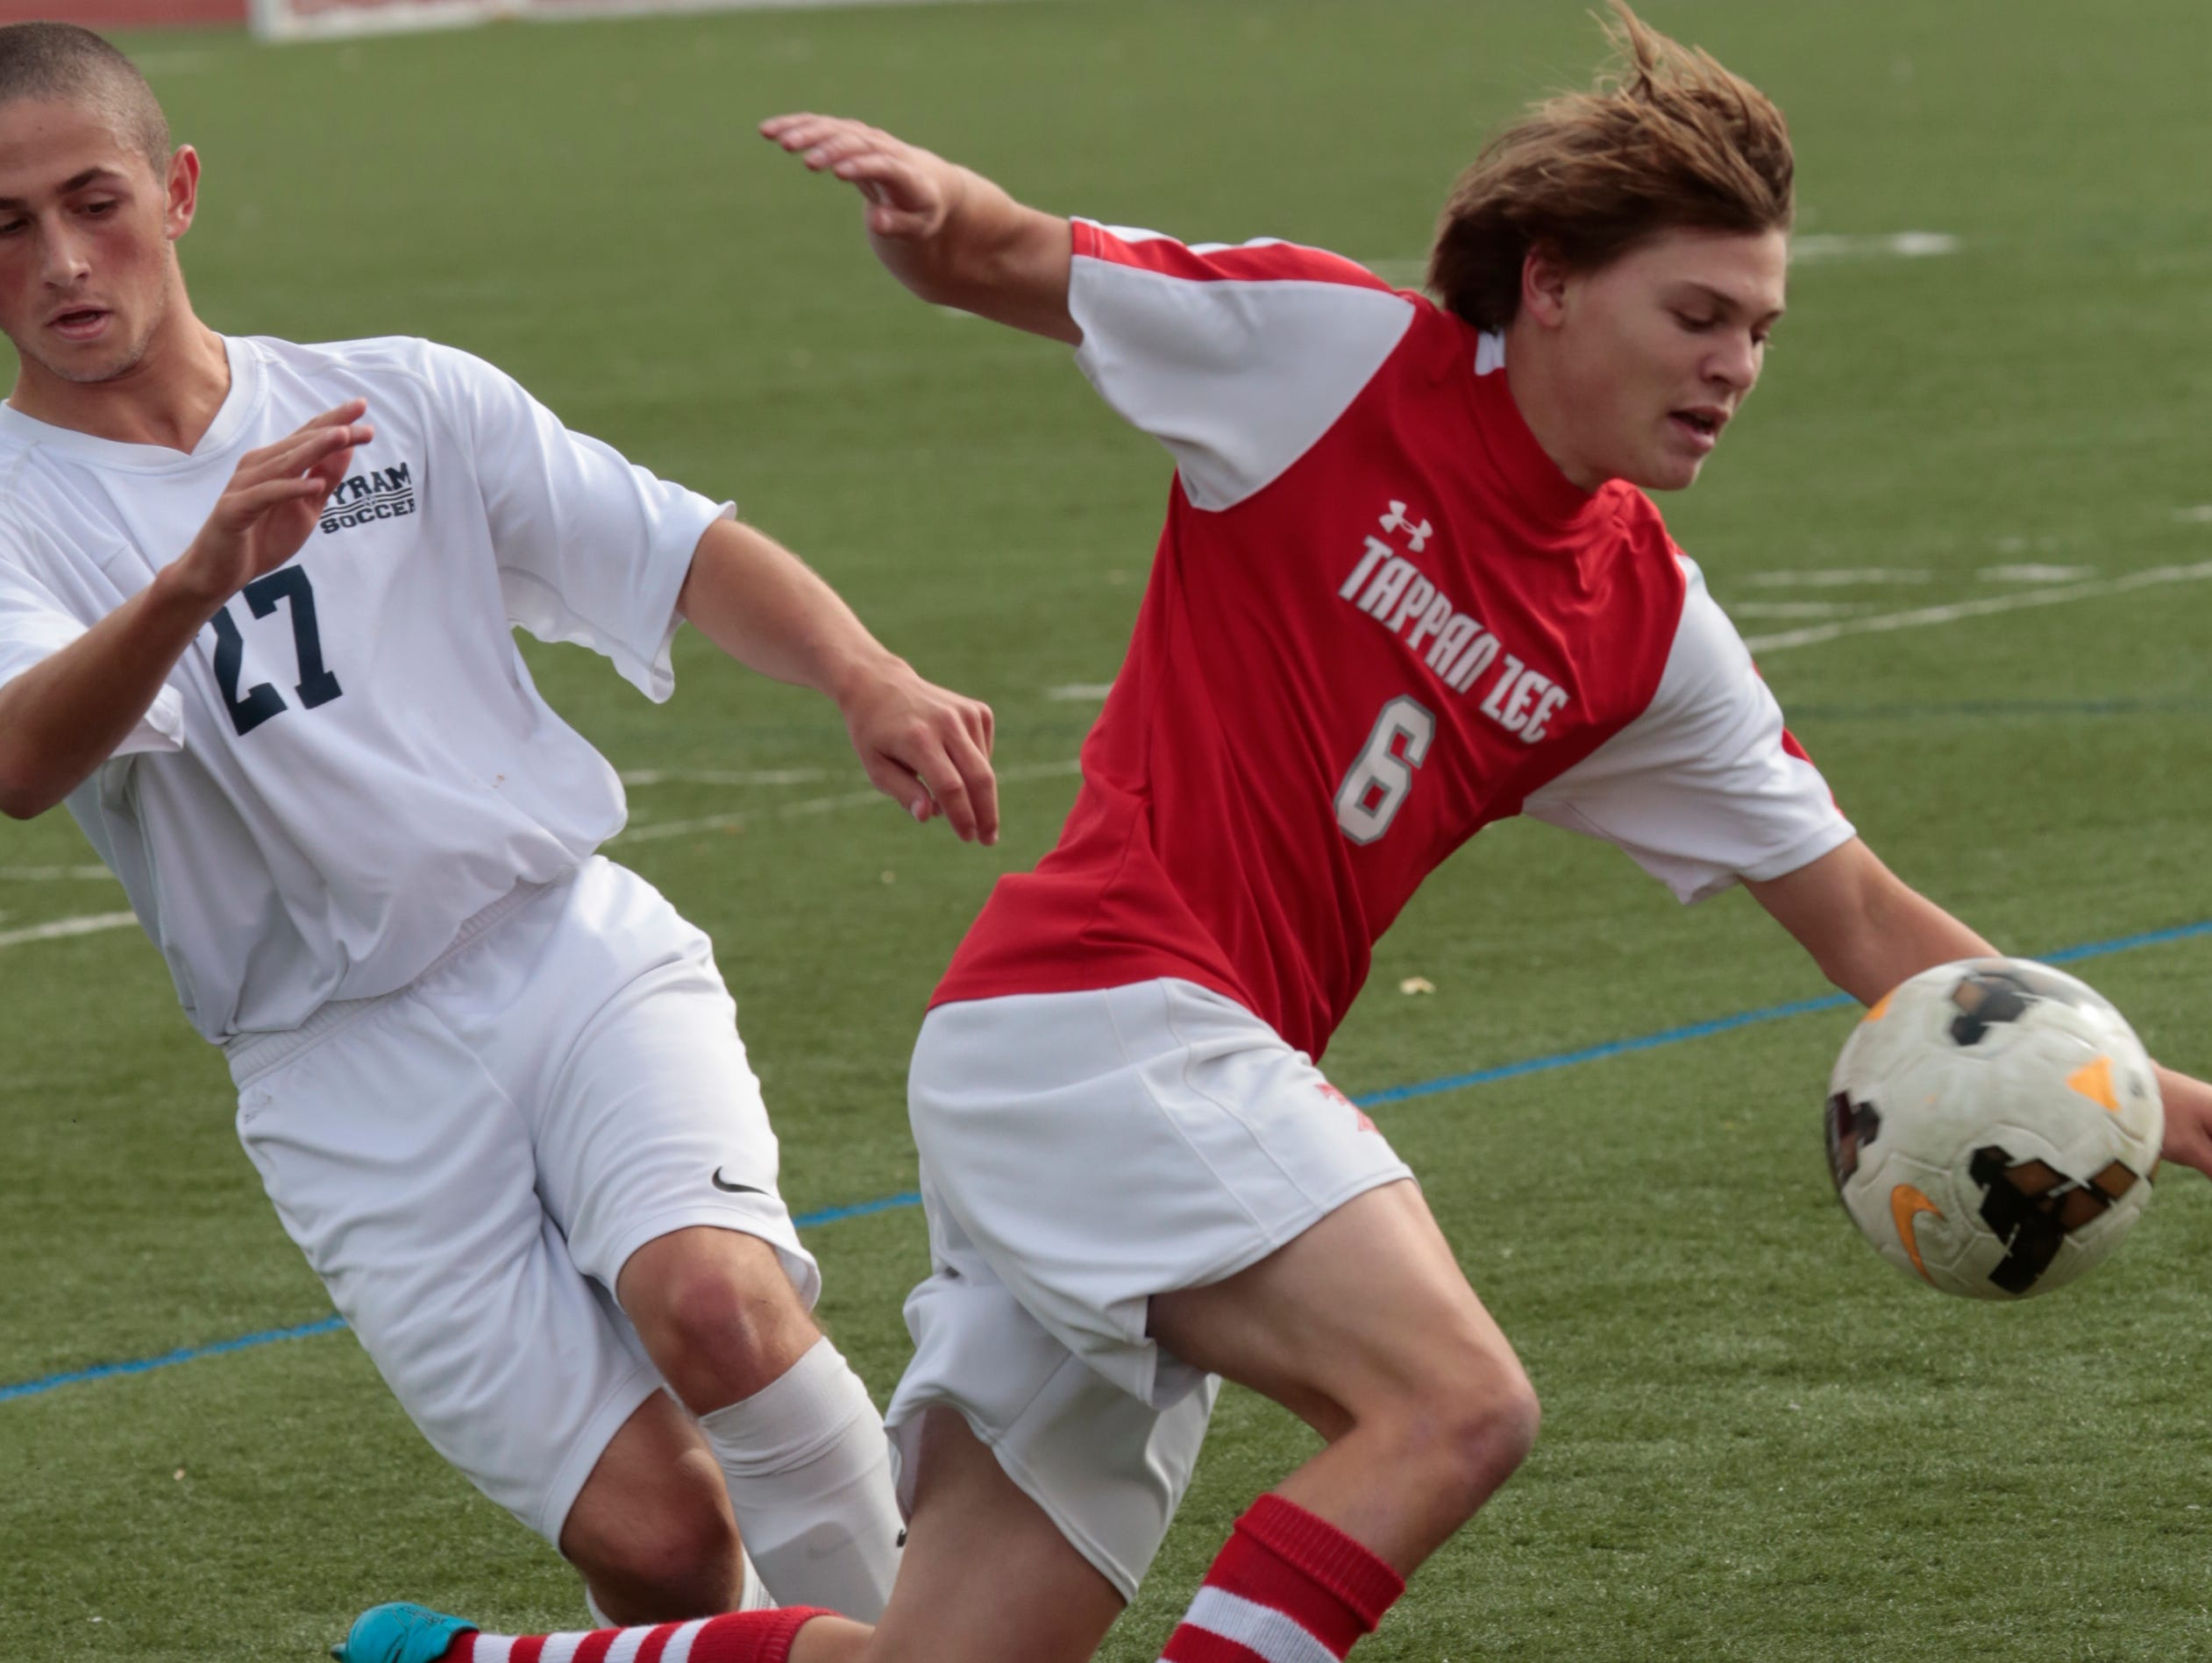 Byrum Hills Michael Bordash (27) and Tappan Zee's Mike Dalisera (6) battle for possession during the game at Byrum Hills High School in Armonk on Oct. 29, 2015.